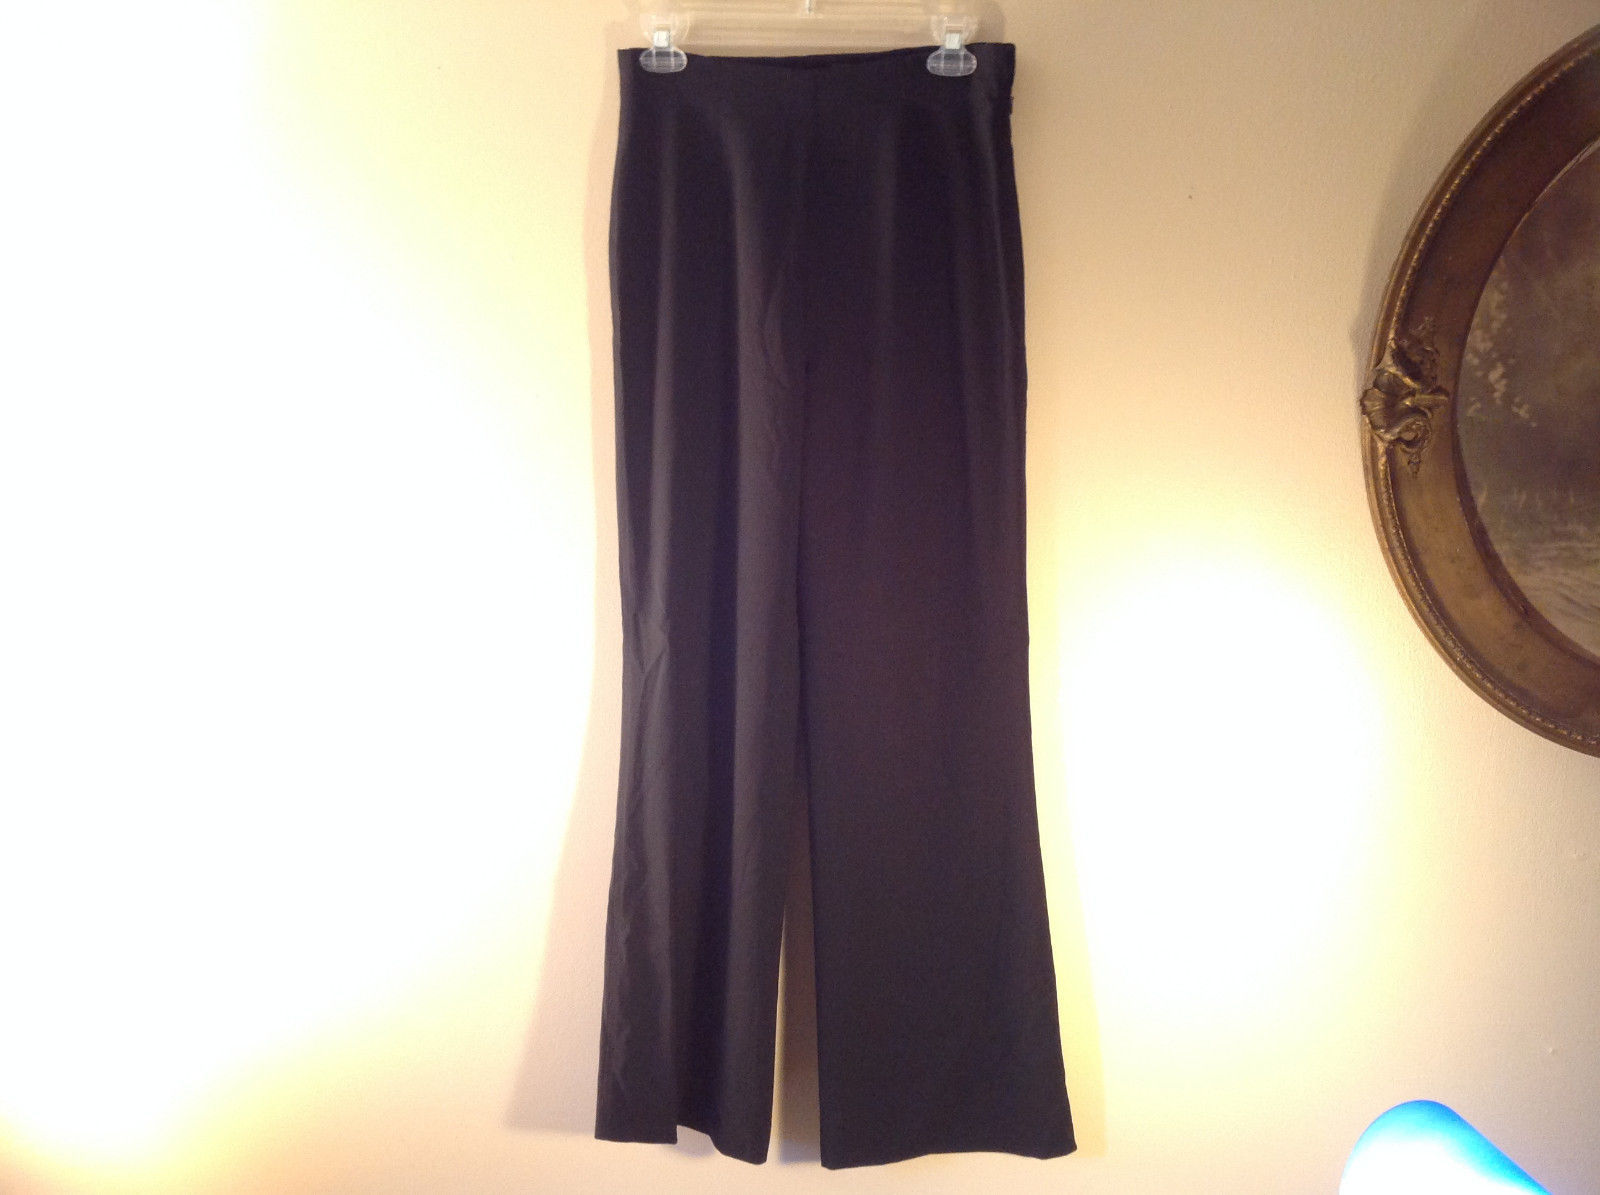 Black Dress Pants by Banana Republic Wide Bottoms Good Condition Size 4